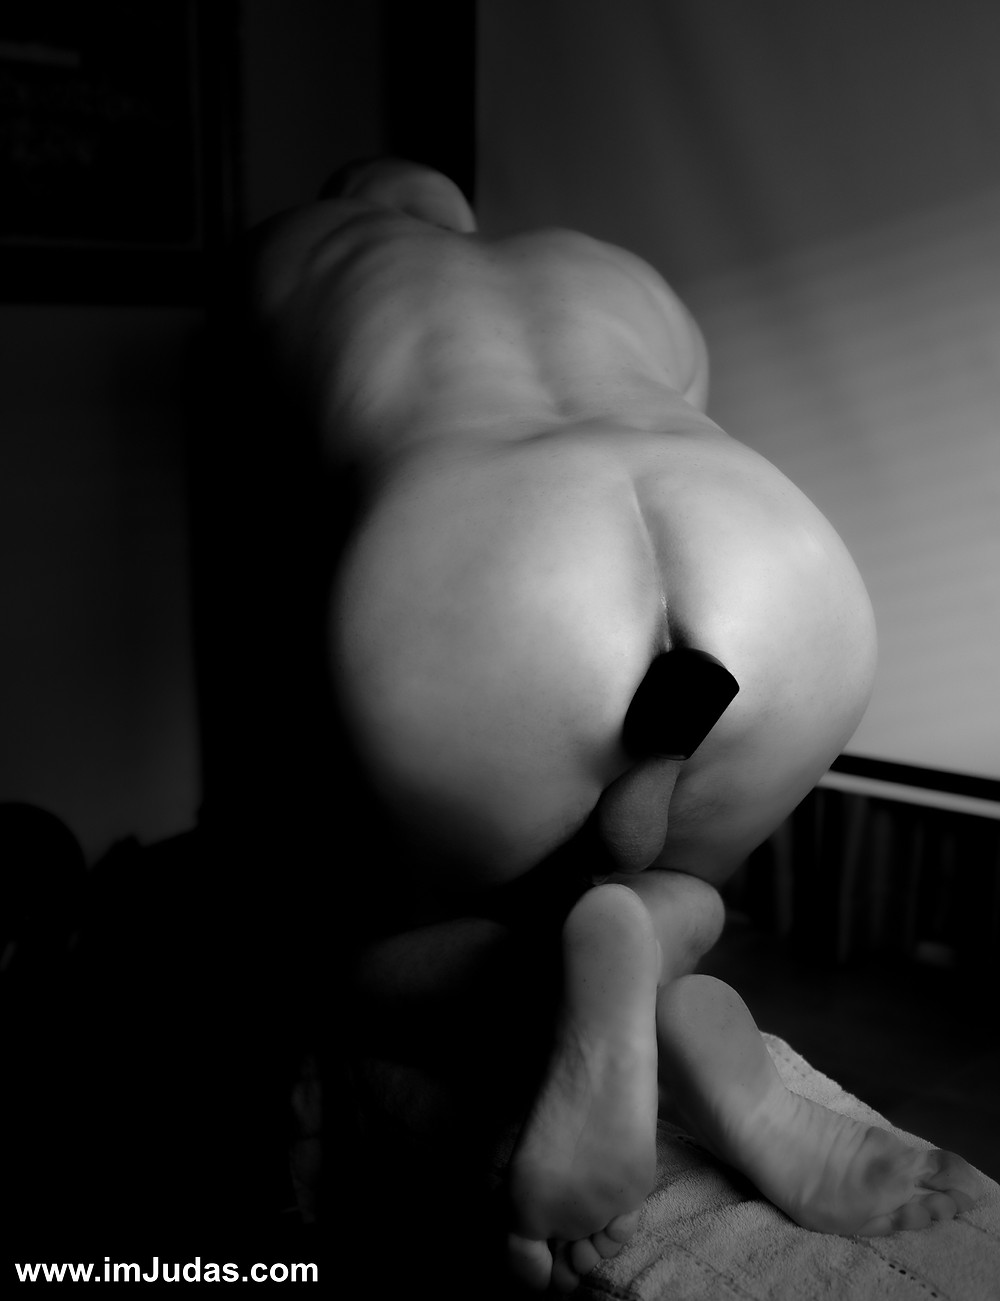 Enjoying my anal vibrator after working out